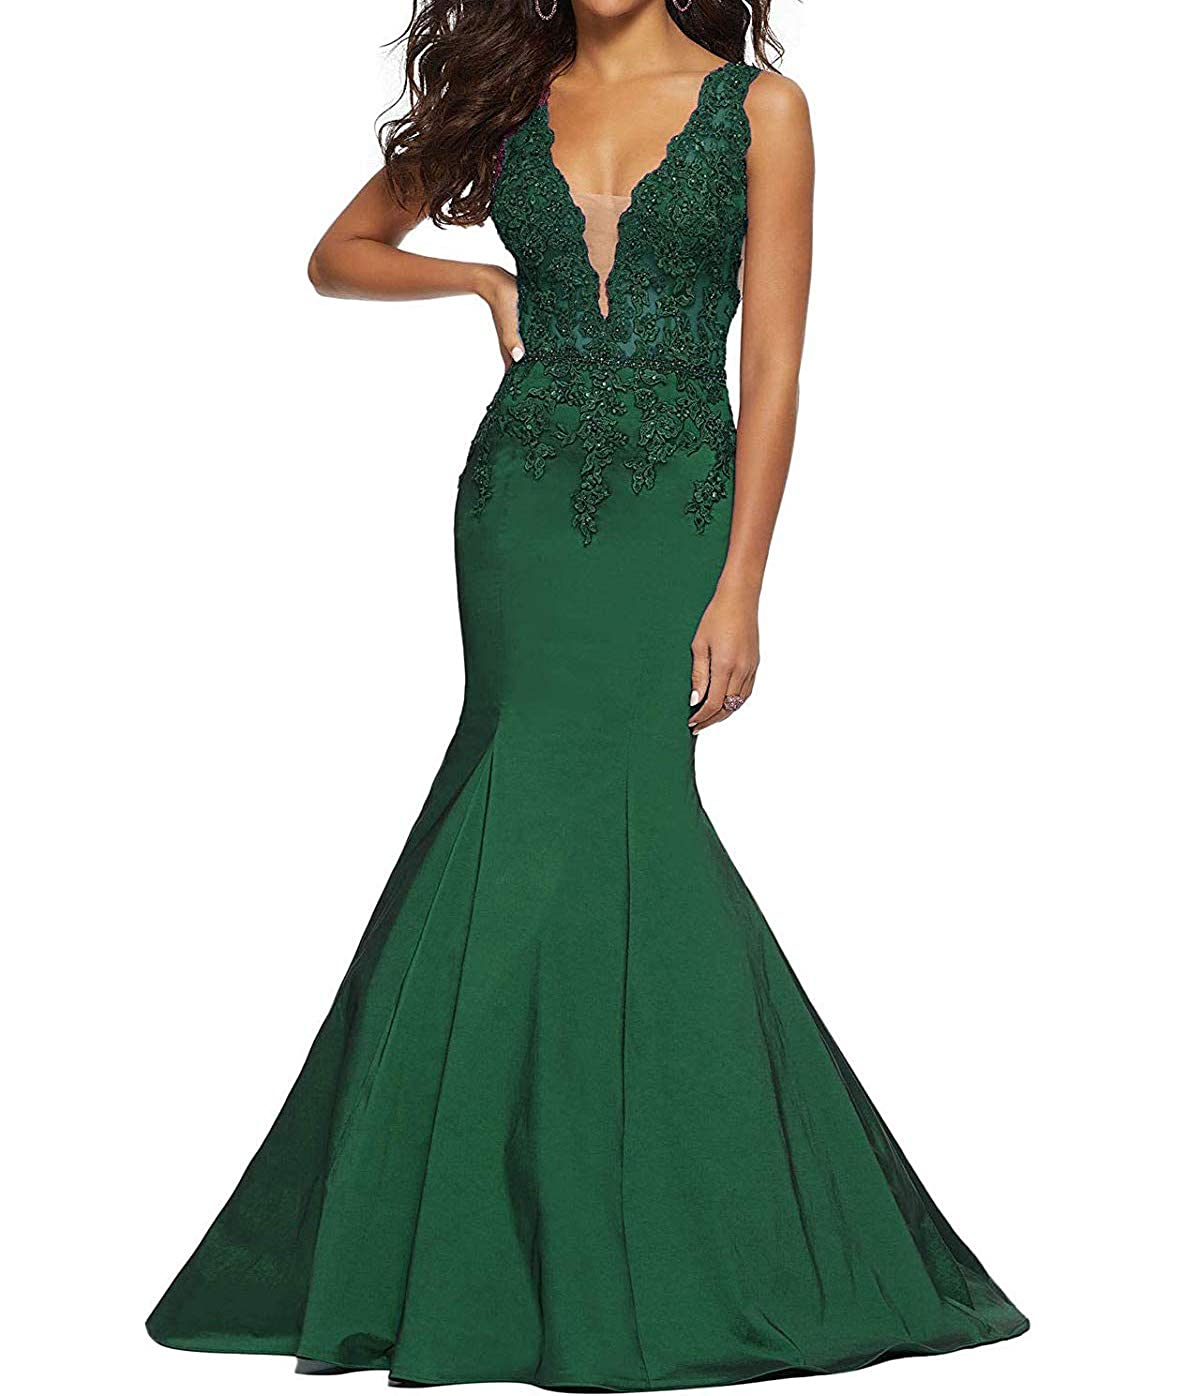 Dark Green tutu.vivi Women's 2019 VNeck Appliques Mermaid Prom Dresses Long Beaded Evening Ball Gown